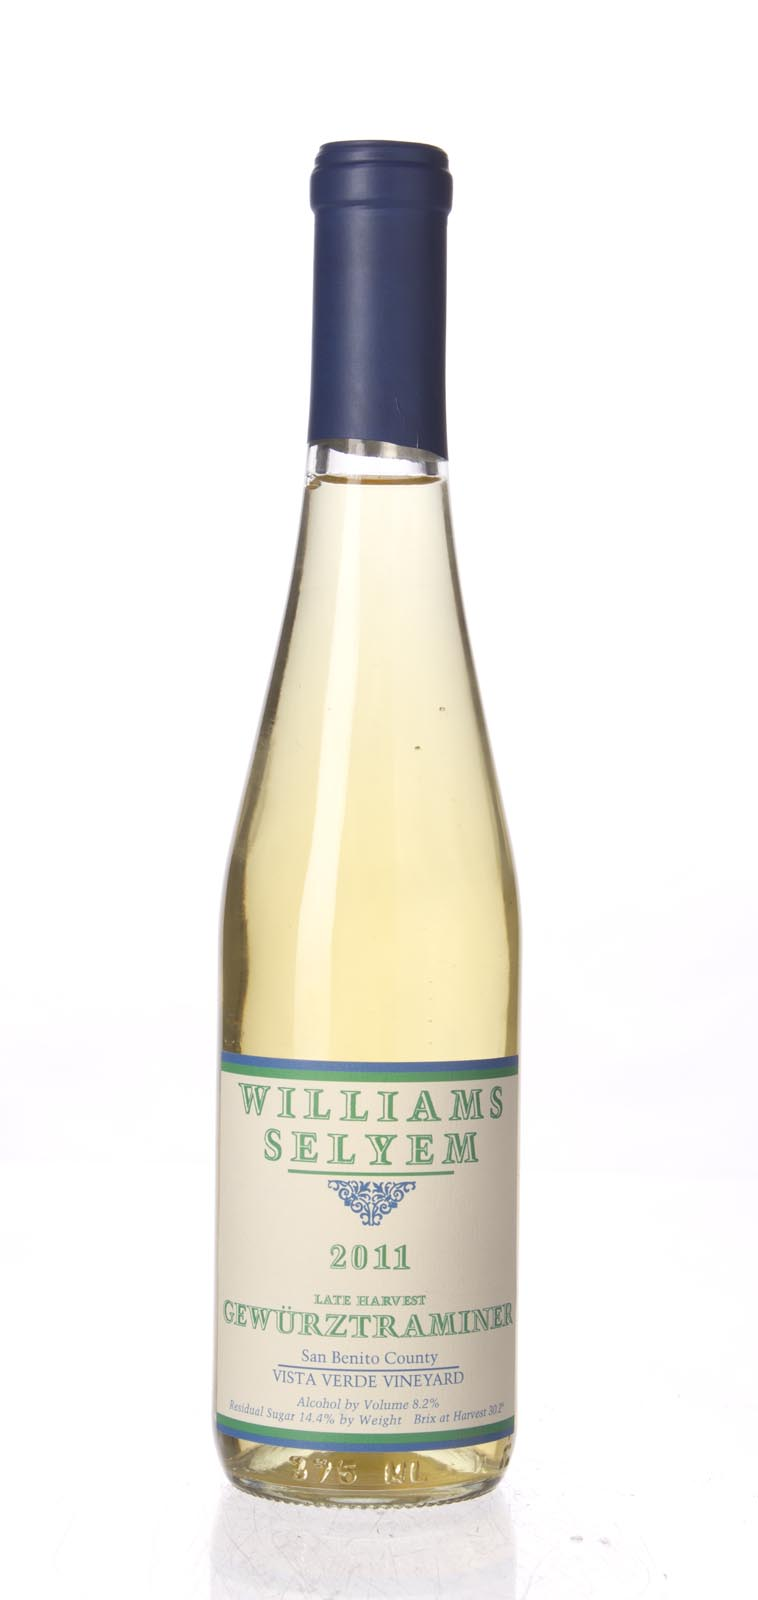 Williams Selyem Gewurztraminer Vista Verde Vineyard Late Harvest 2011, 375ml () from The BPW - Merchants of rare and fine wines.